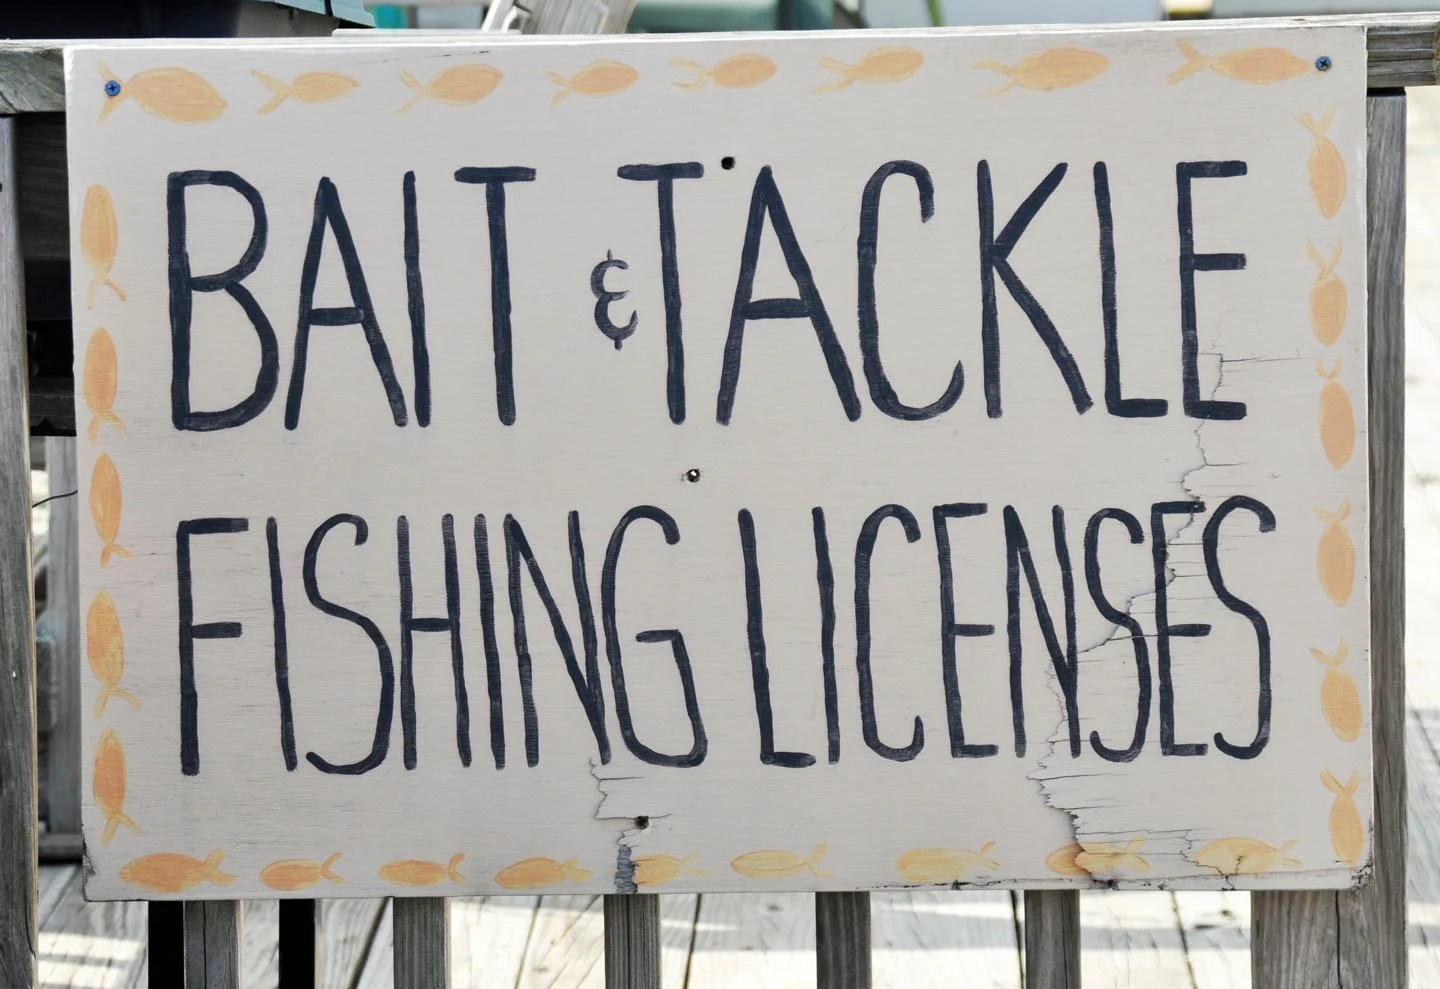 """A sign displaying the words """"bait and tackle, fishing licenses"""""""